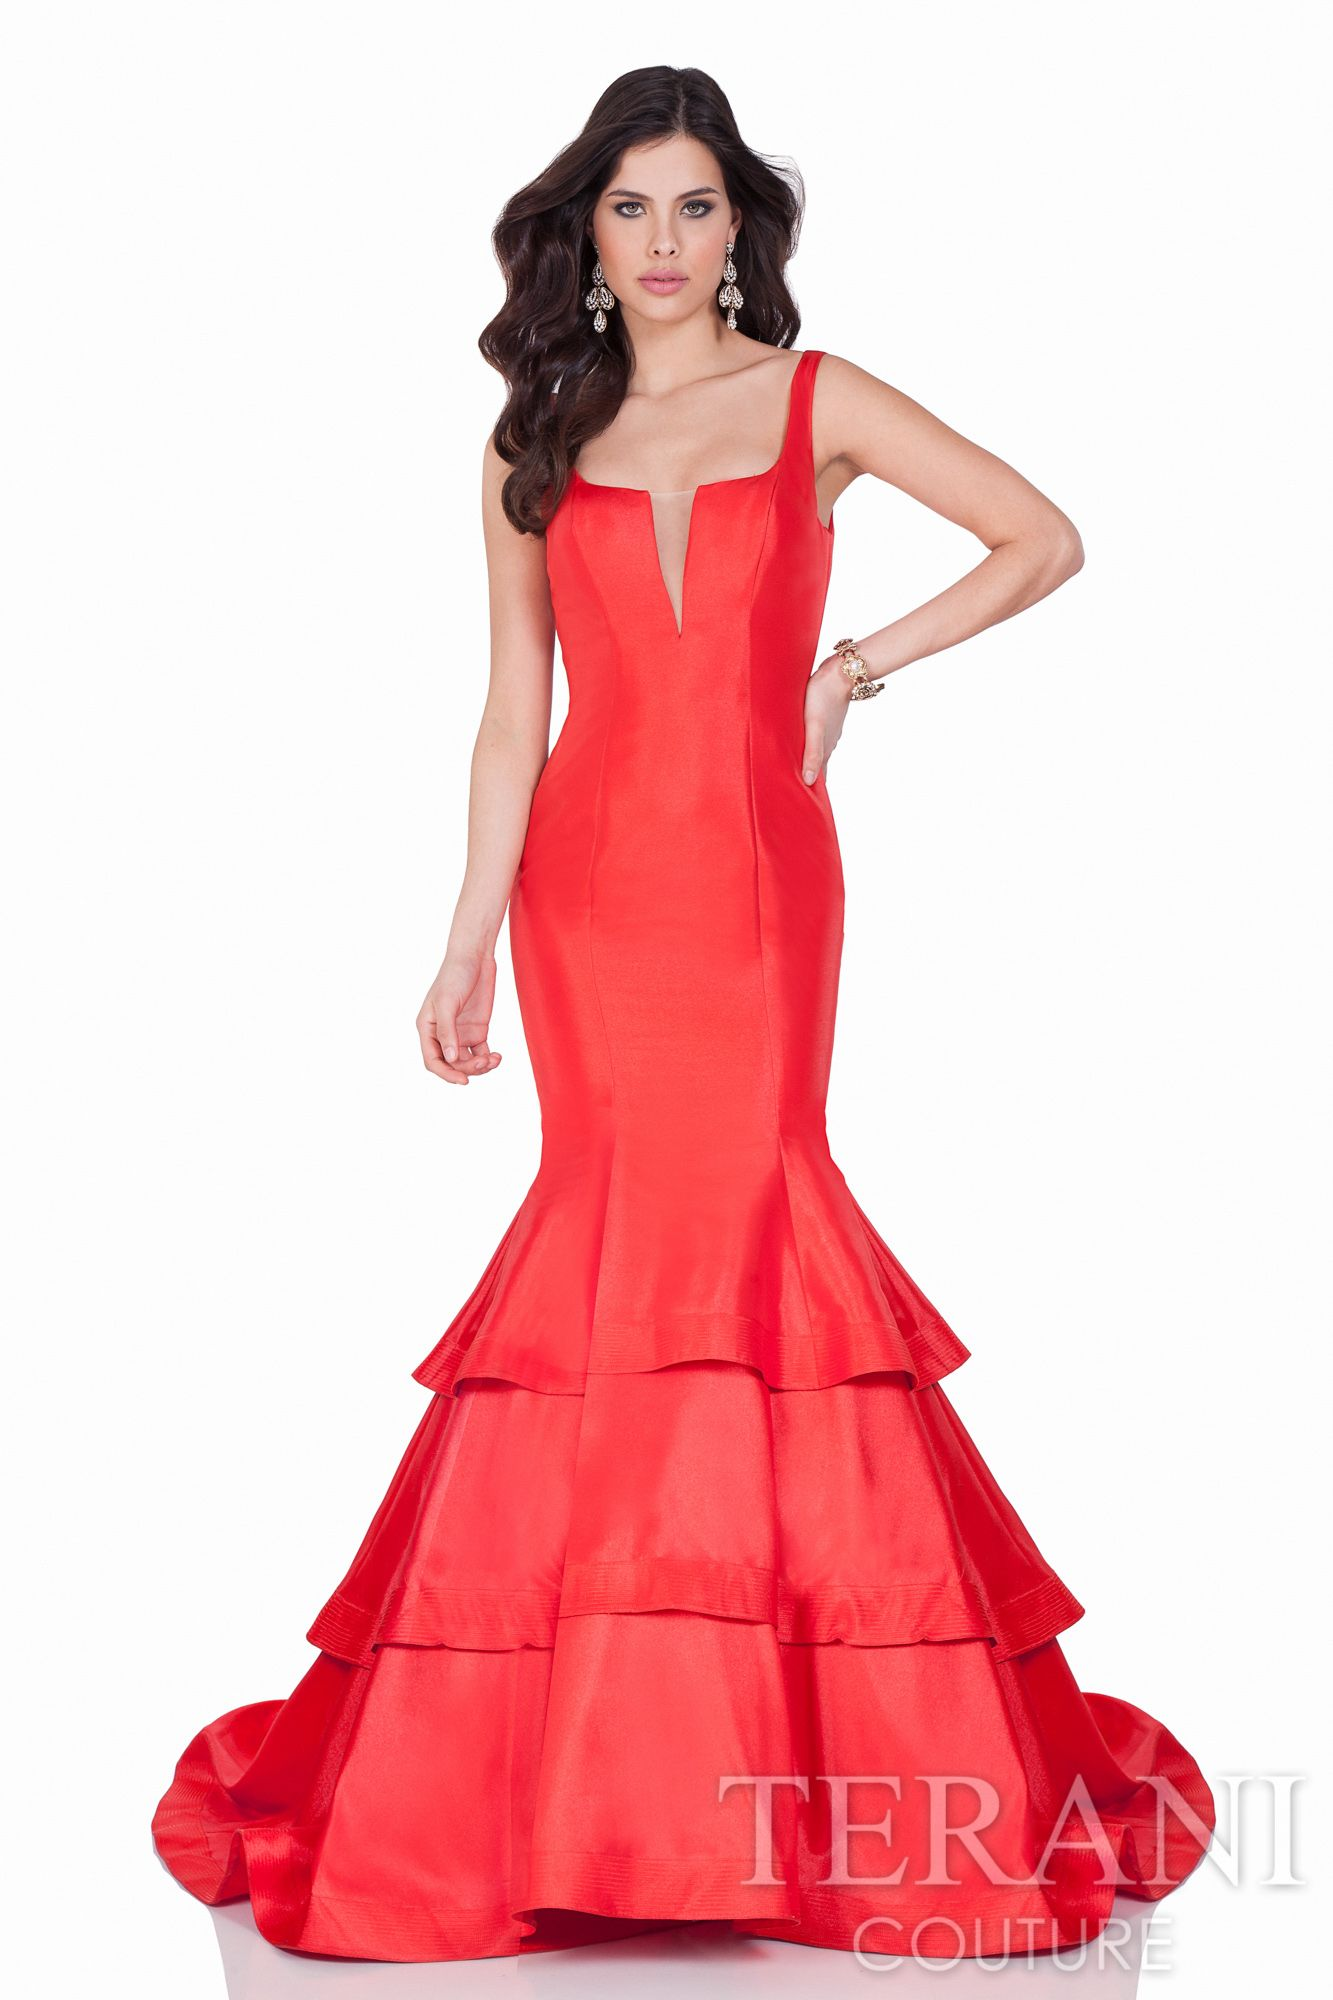 Terani couture prom dresses evening dresses homecoming